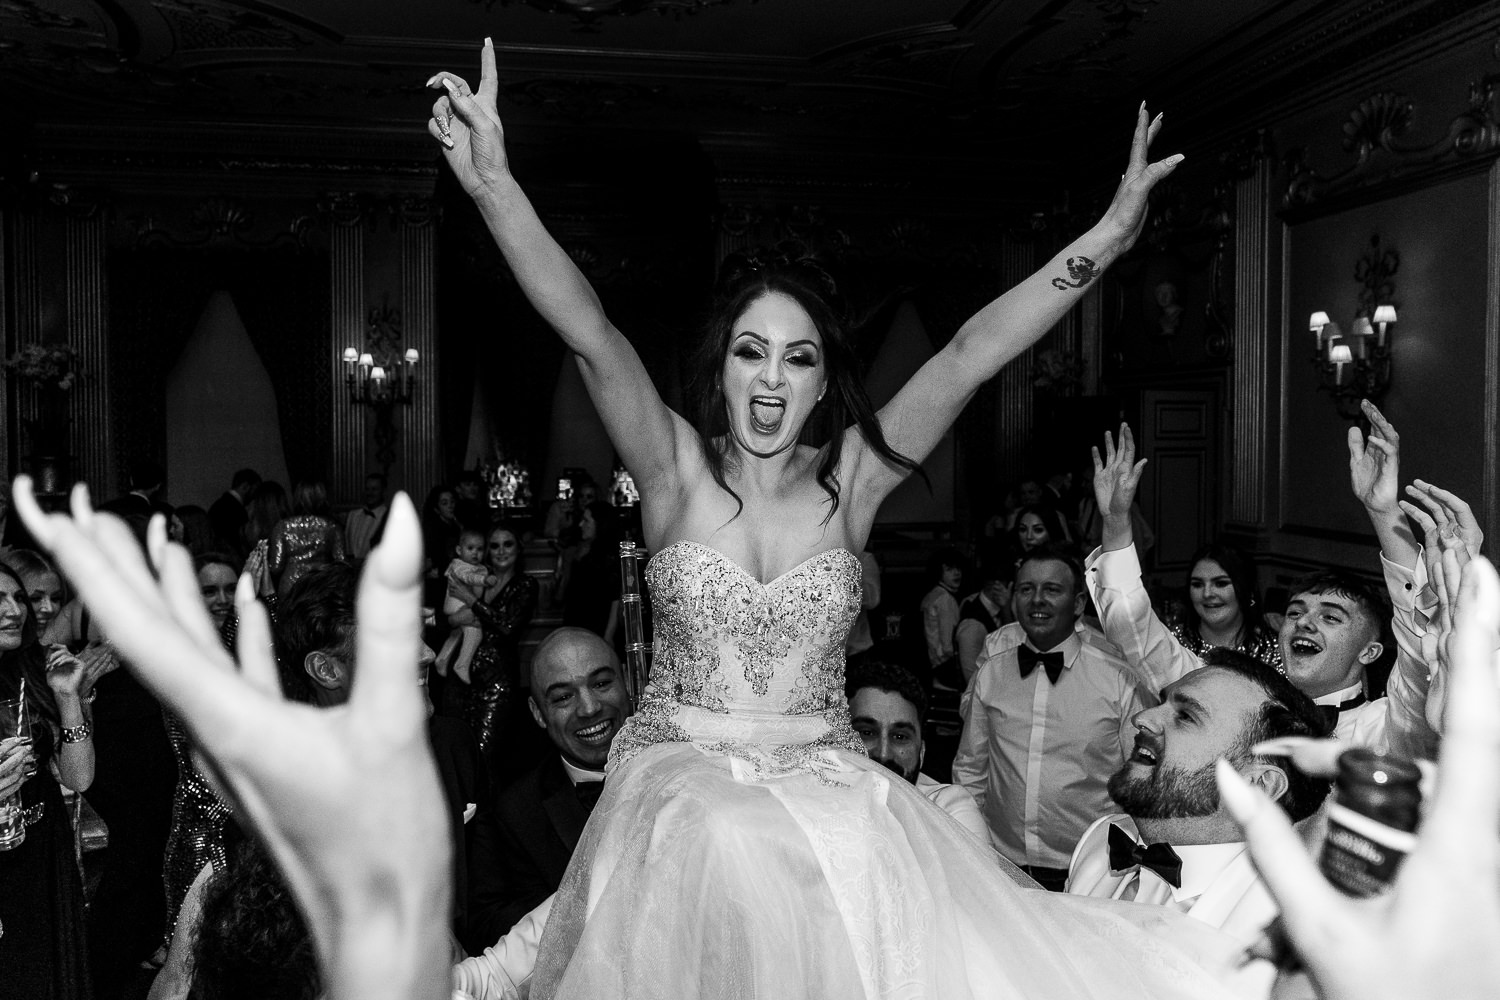 Bride in the air during dancing